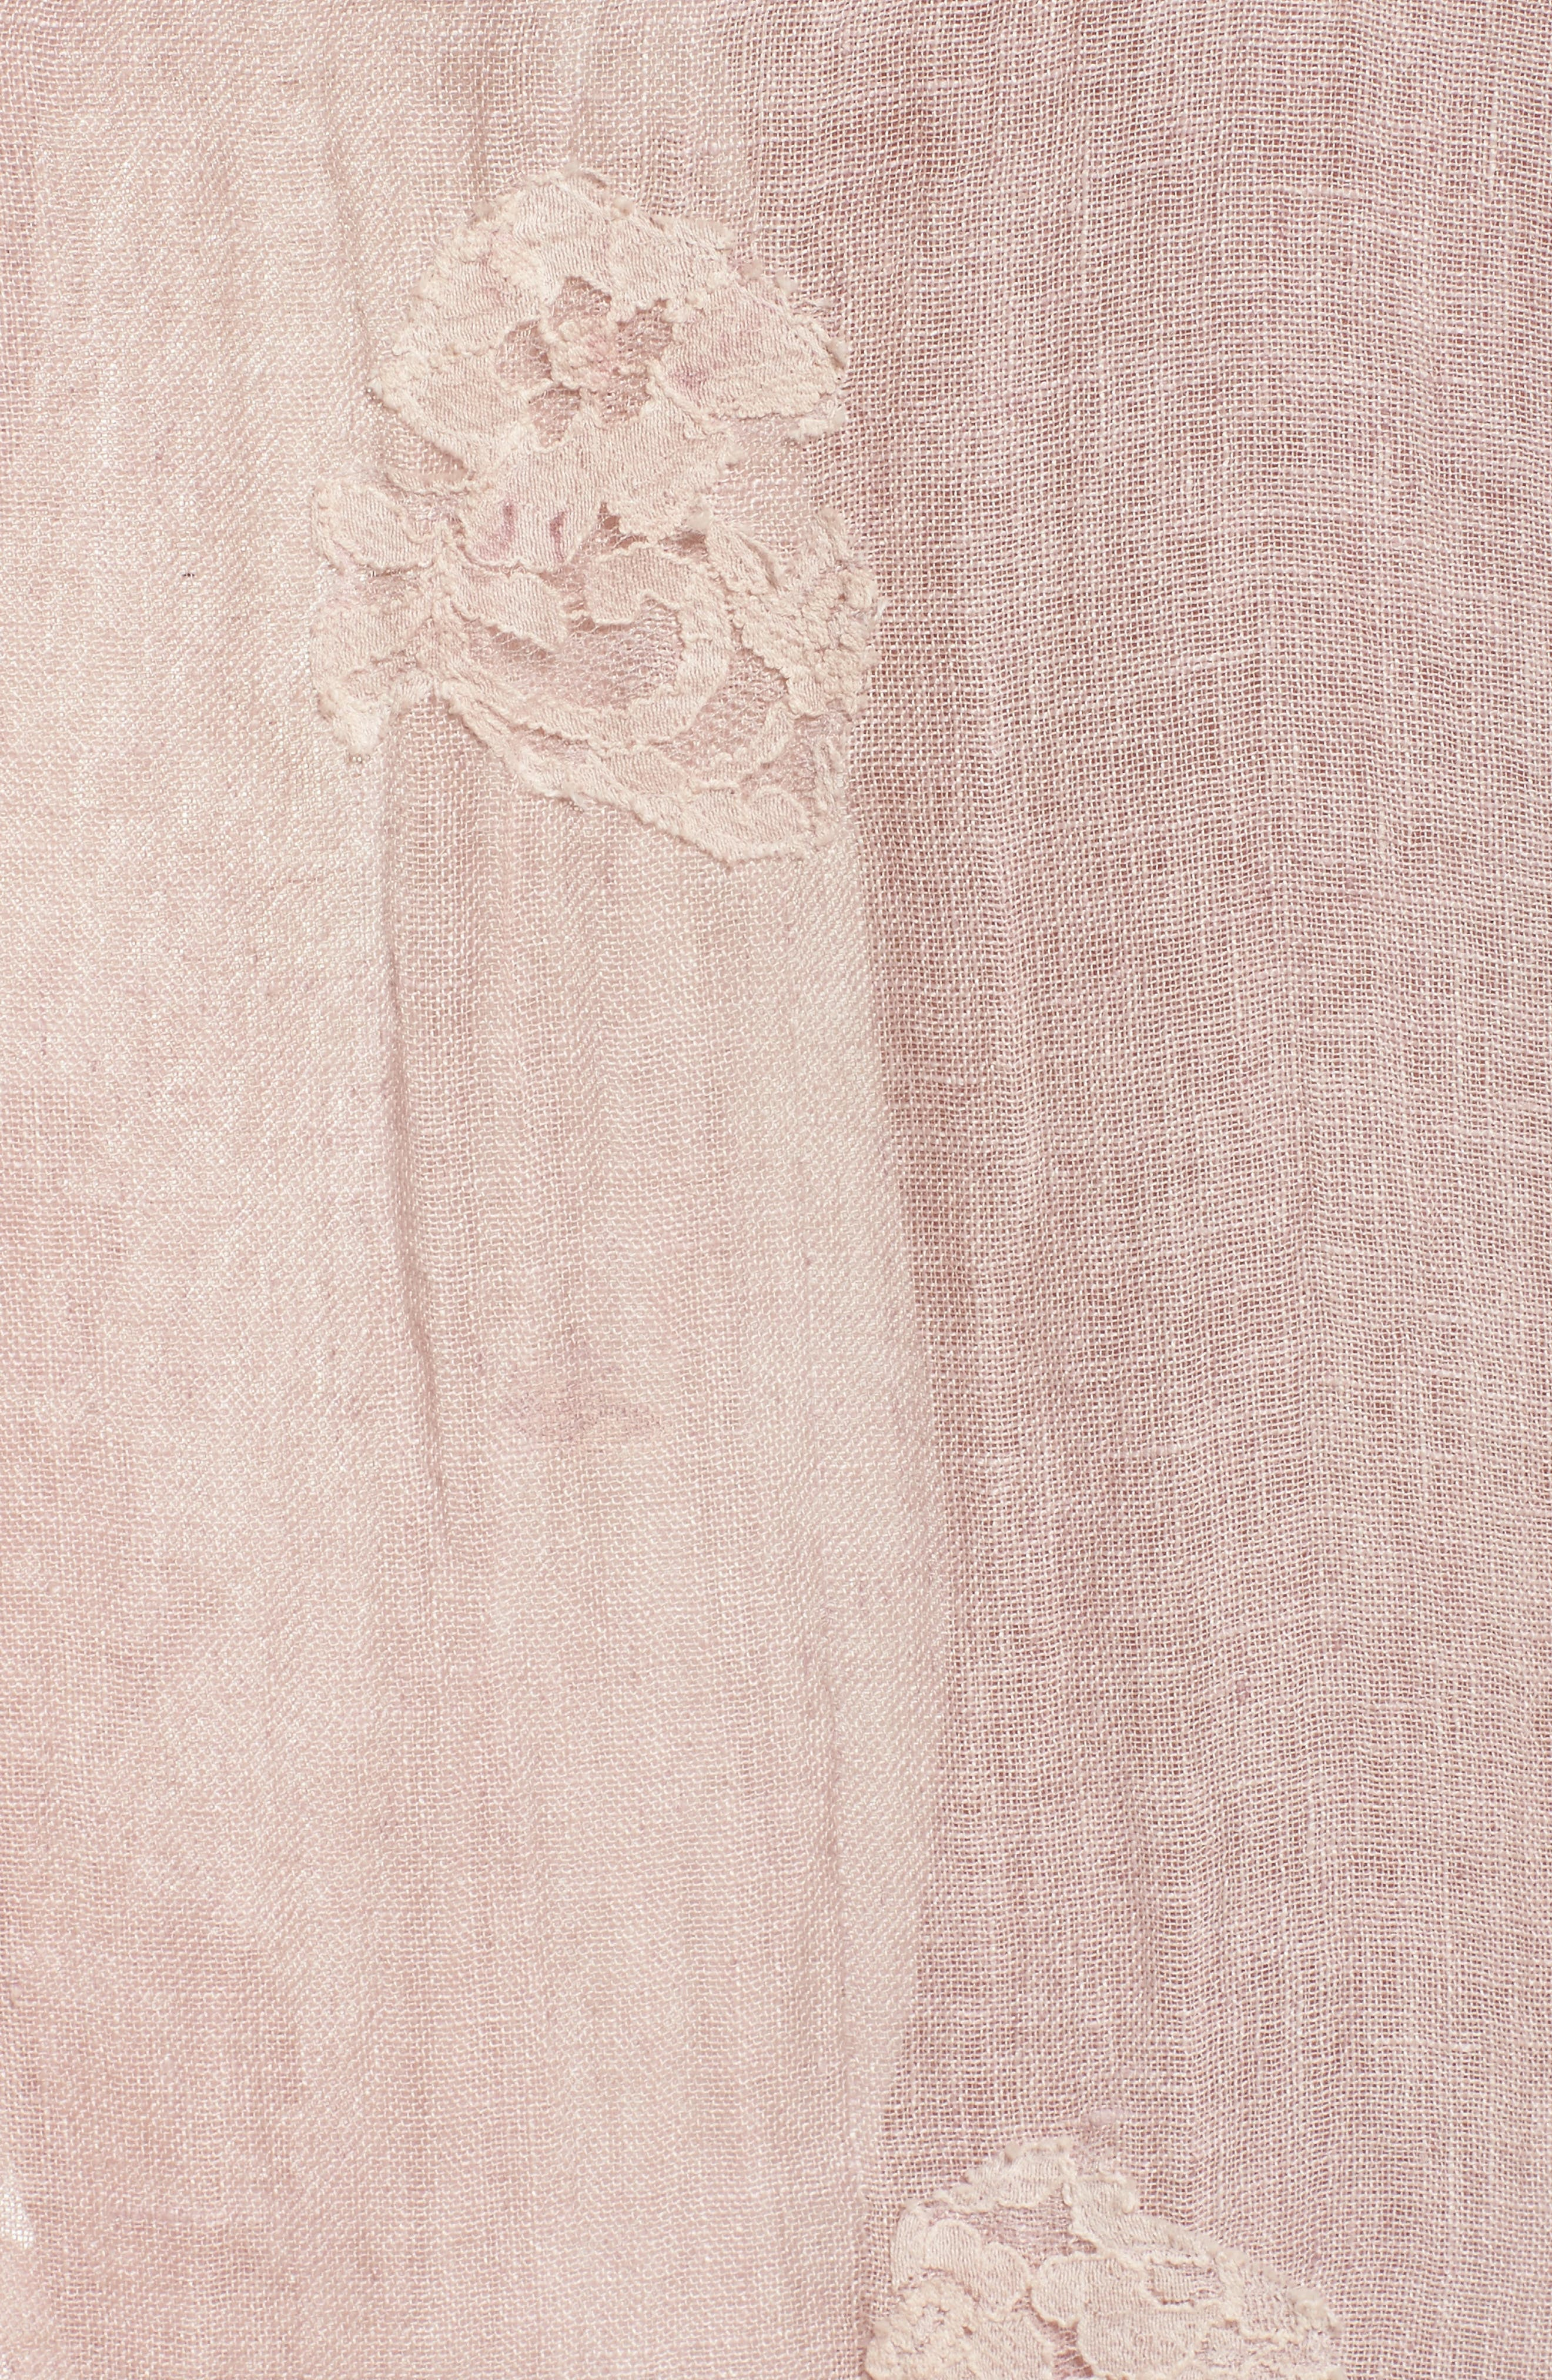 Daisy Linen Cover-Up Dress,                             Alternate thumbnail 5, color,                             Dusty Pink